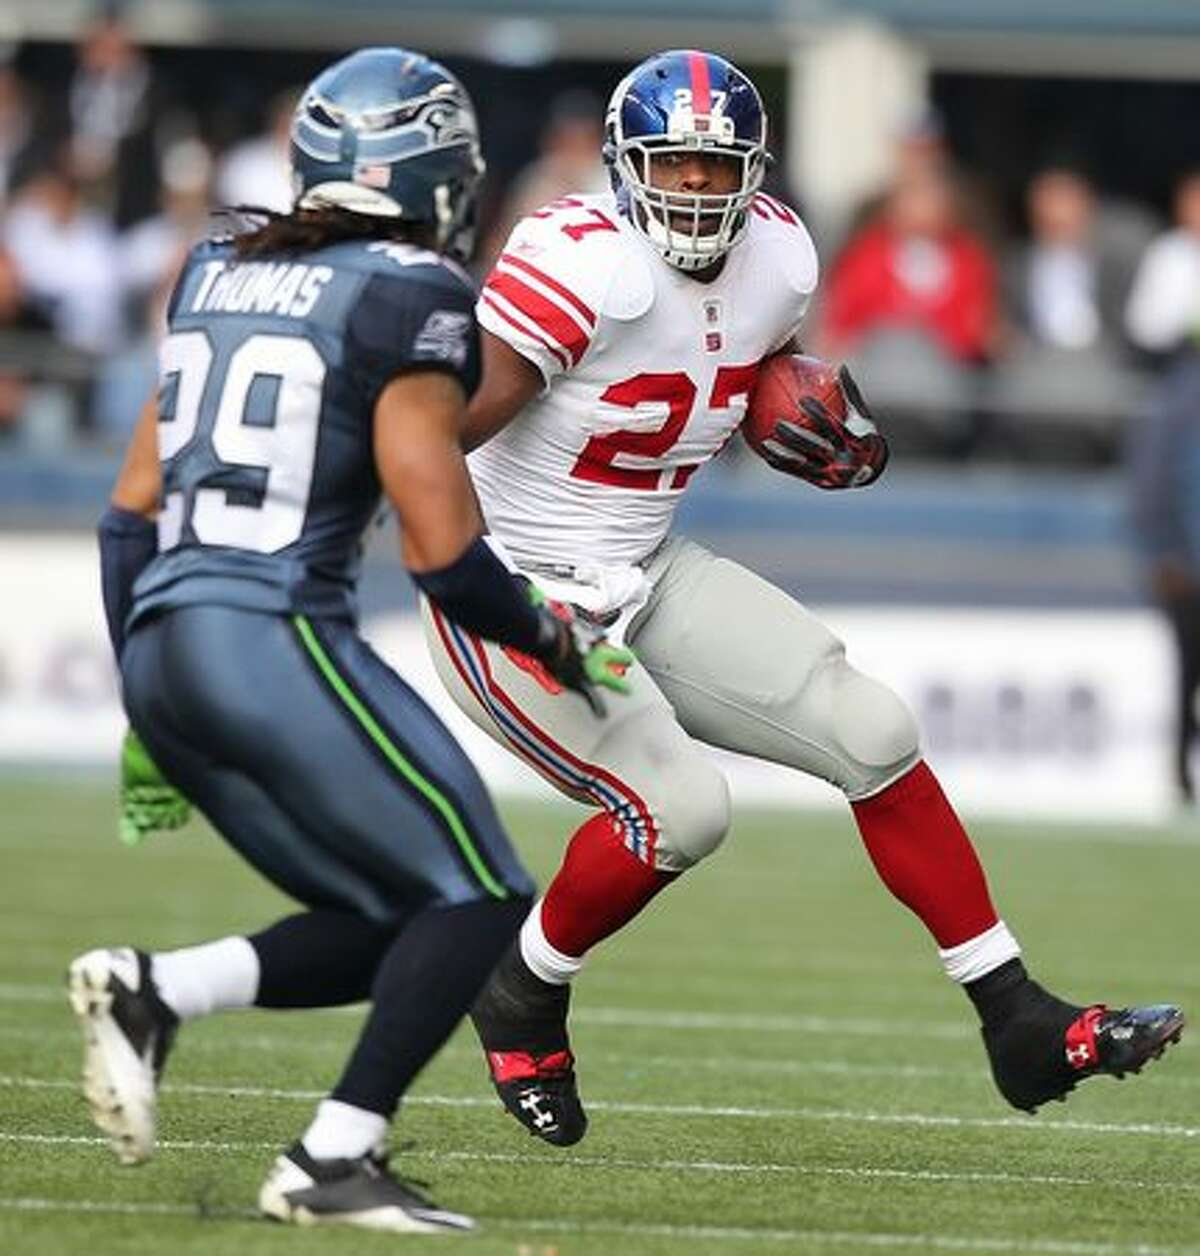 Running back Brandon Jacobs #27 of the New York Giants rushes against Earl Thomas #29 of the Seattle Seahawks.